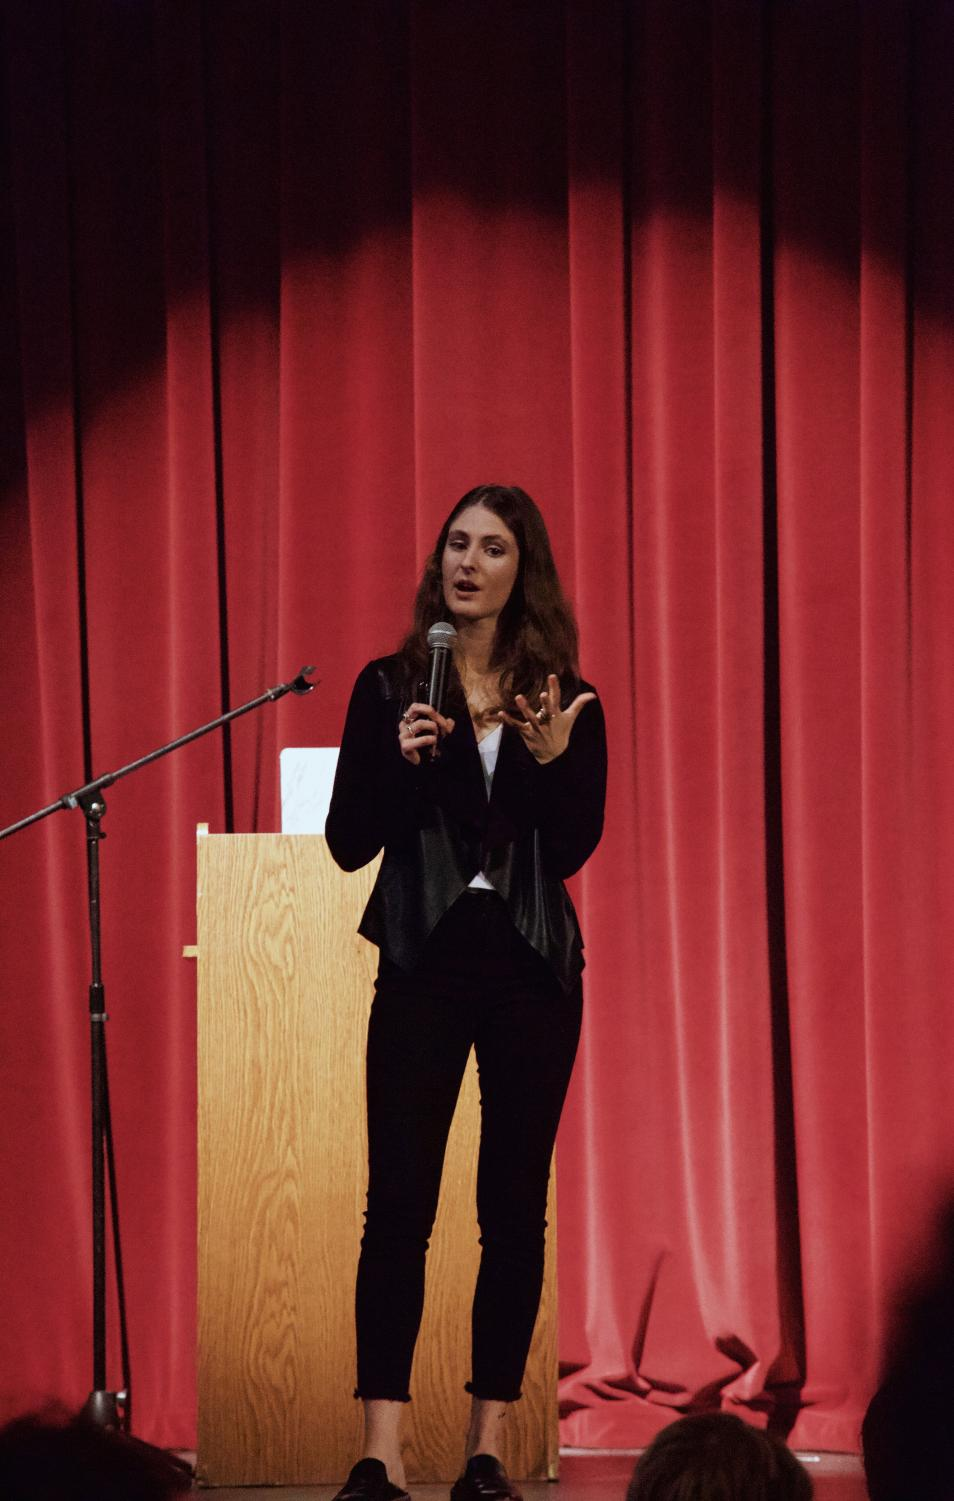 Guest speaker Jacqueline Reilly tells her personal story to the junior and senior classes in the auditorium, informing students about sexual assault and violence.